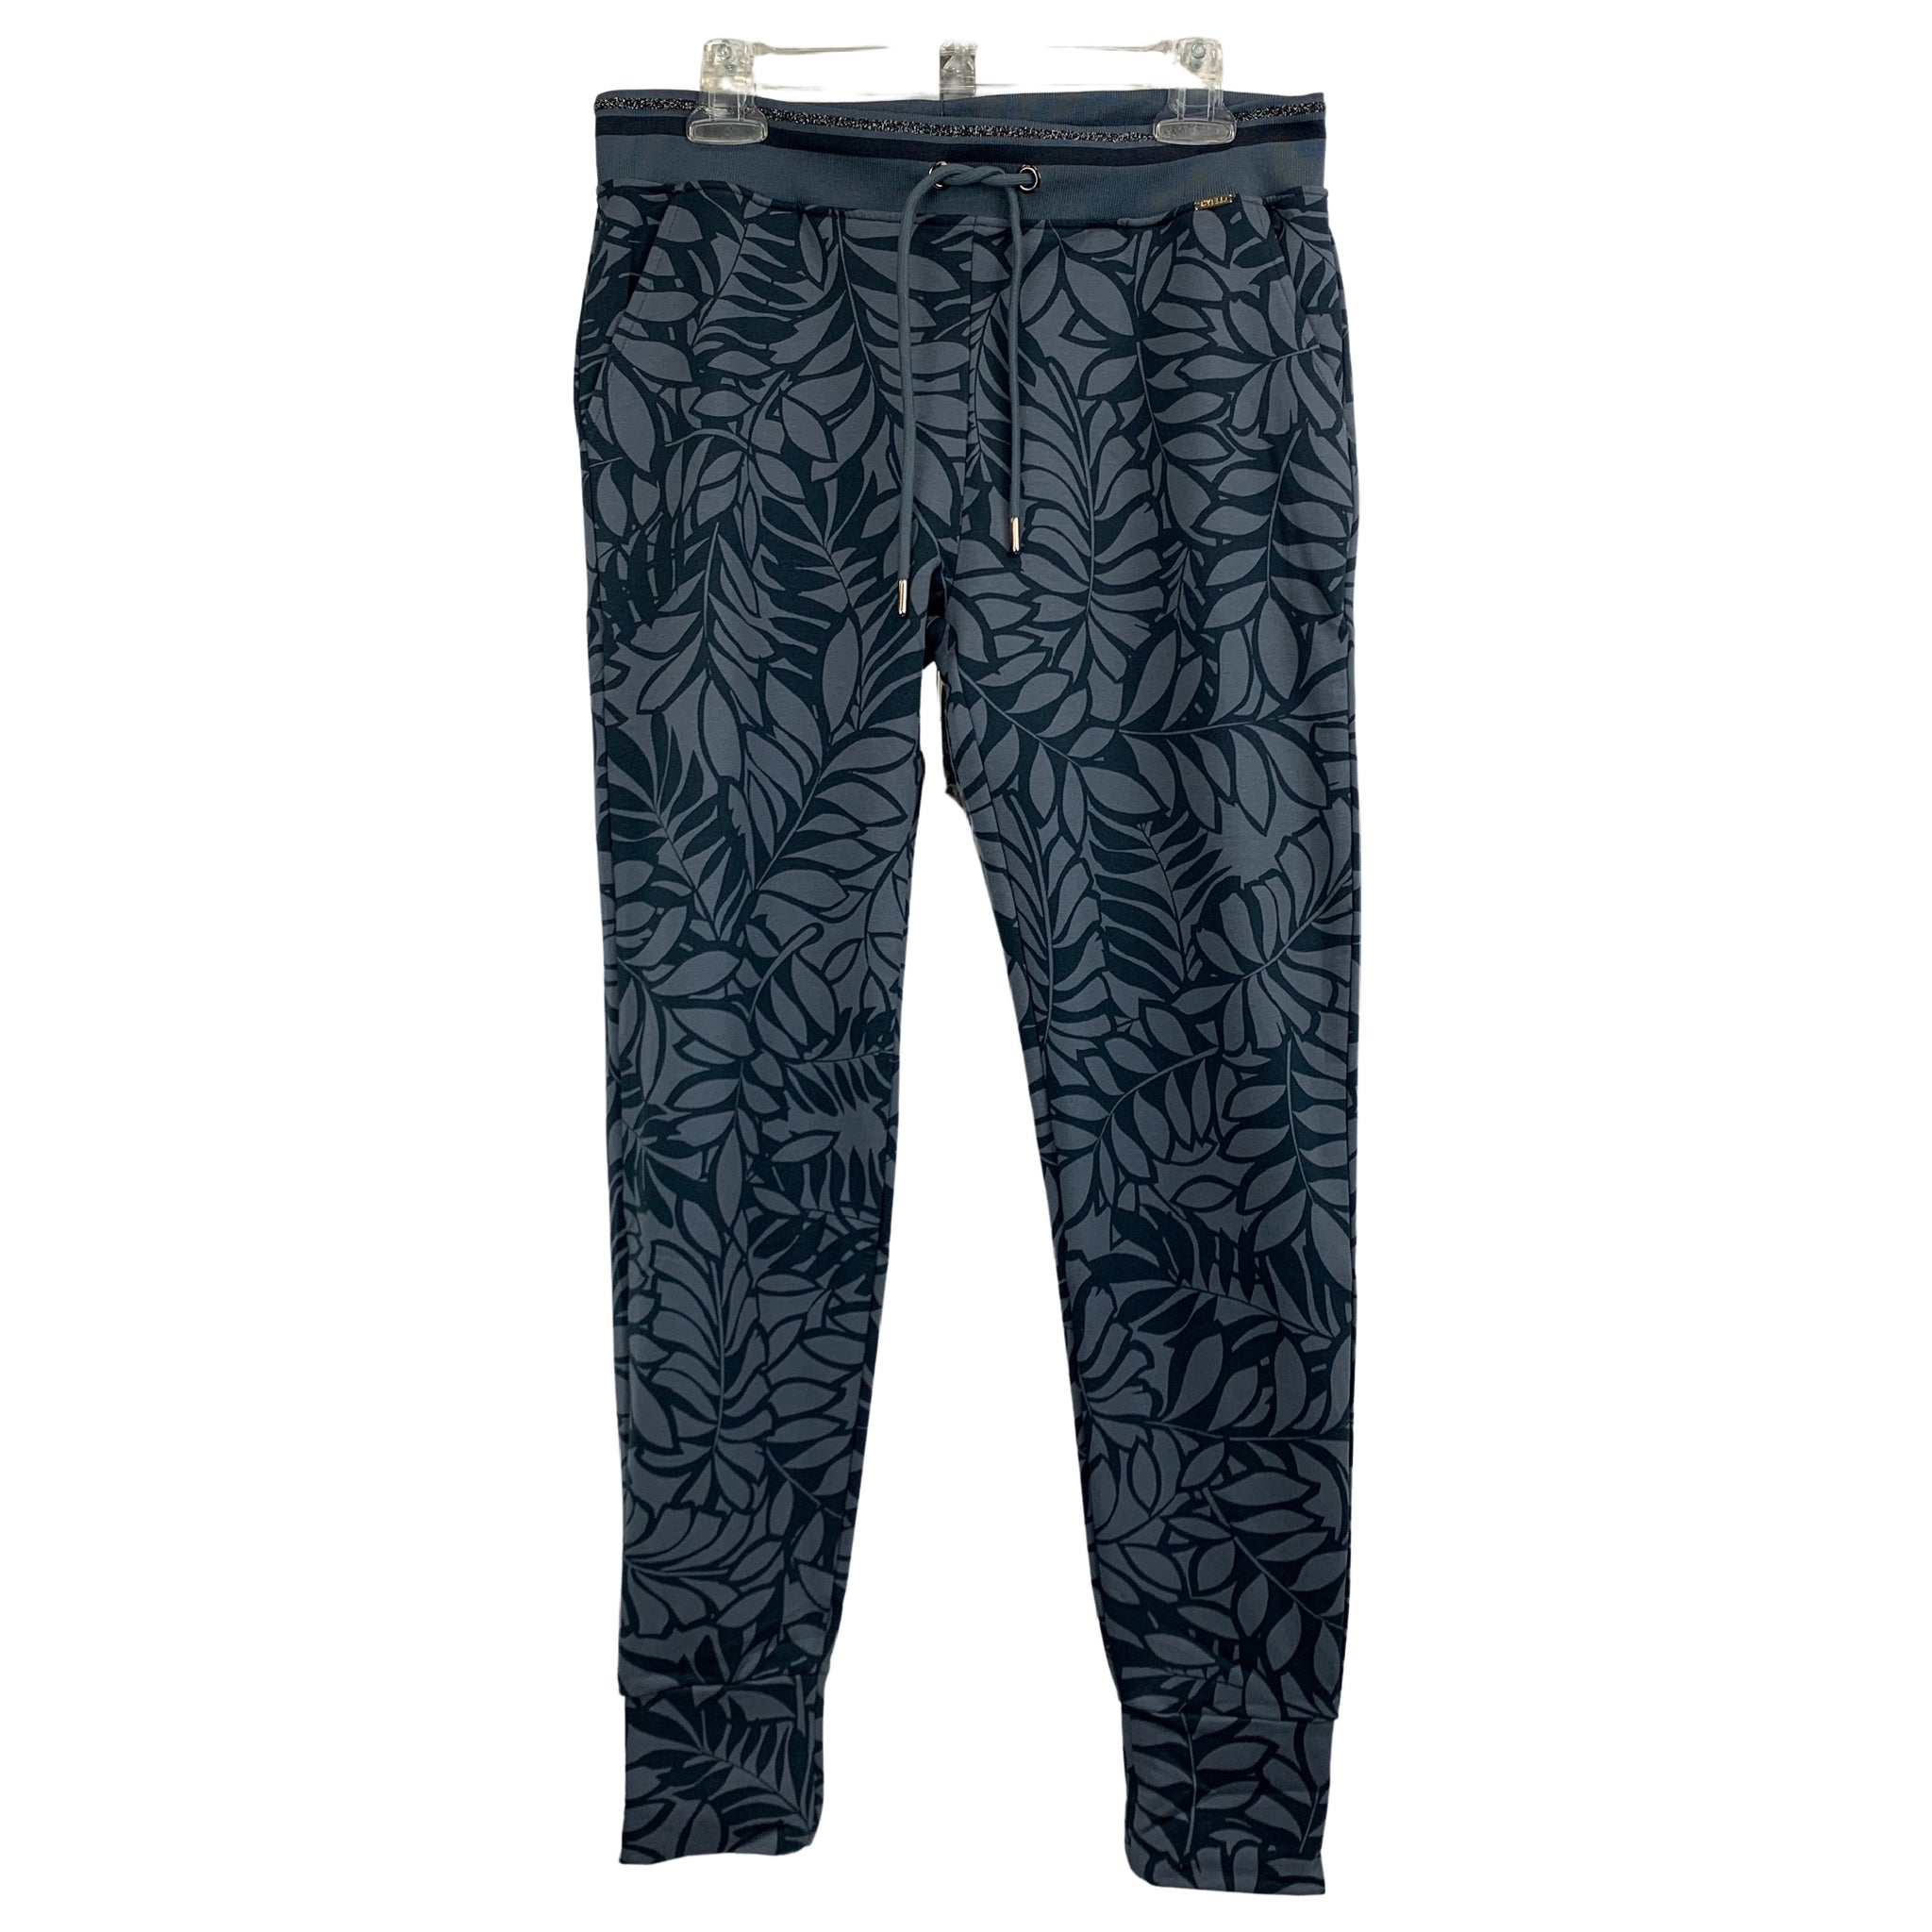 Cyell Ginko Leafy Patterned Bottoms - Chic Thrills